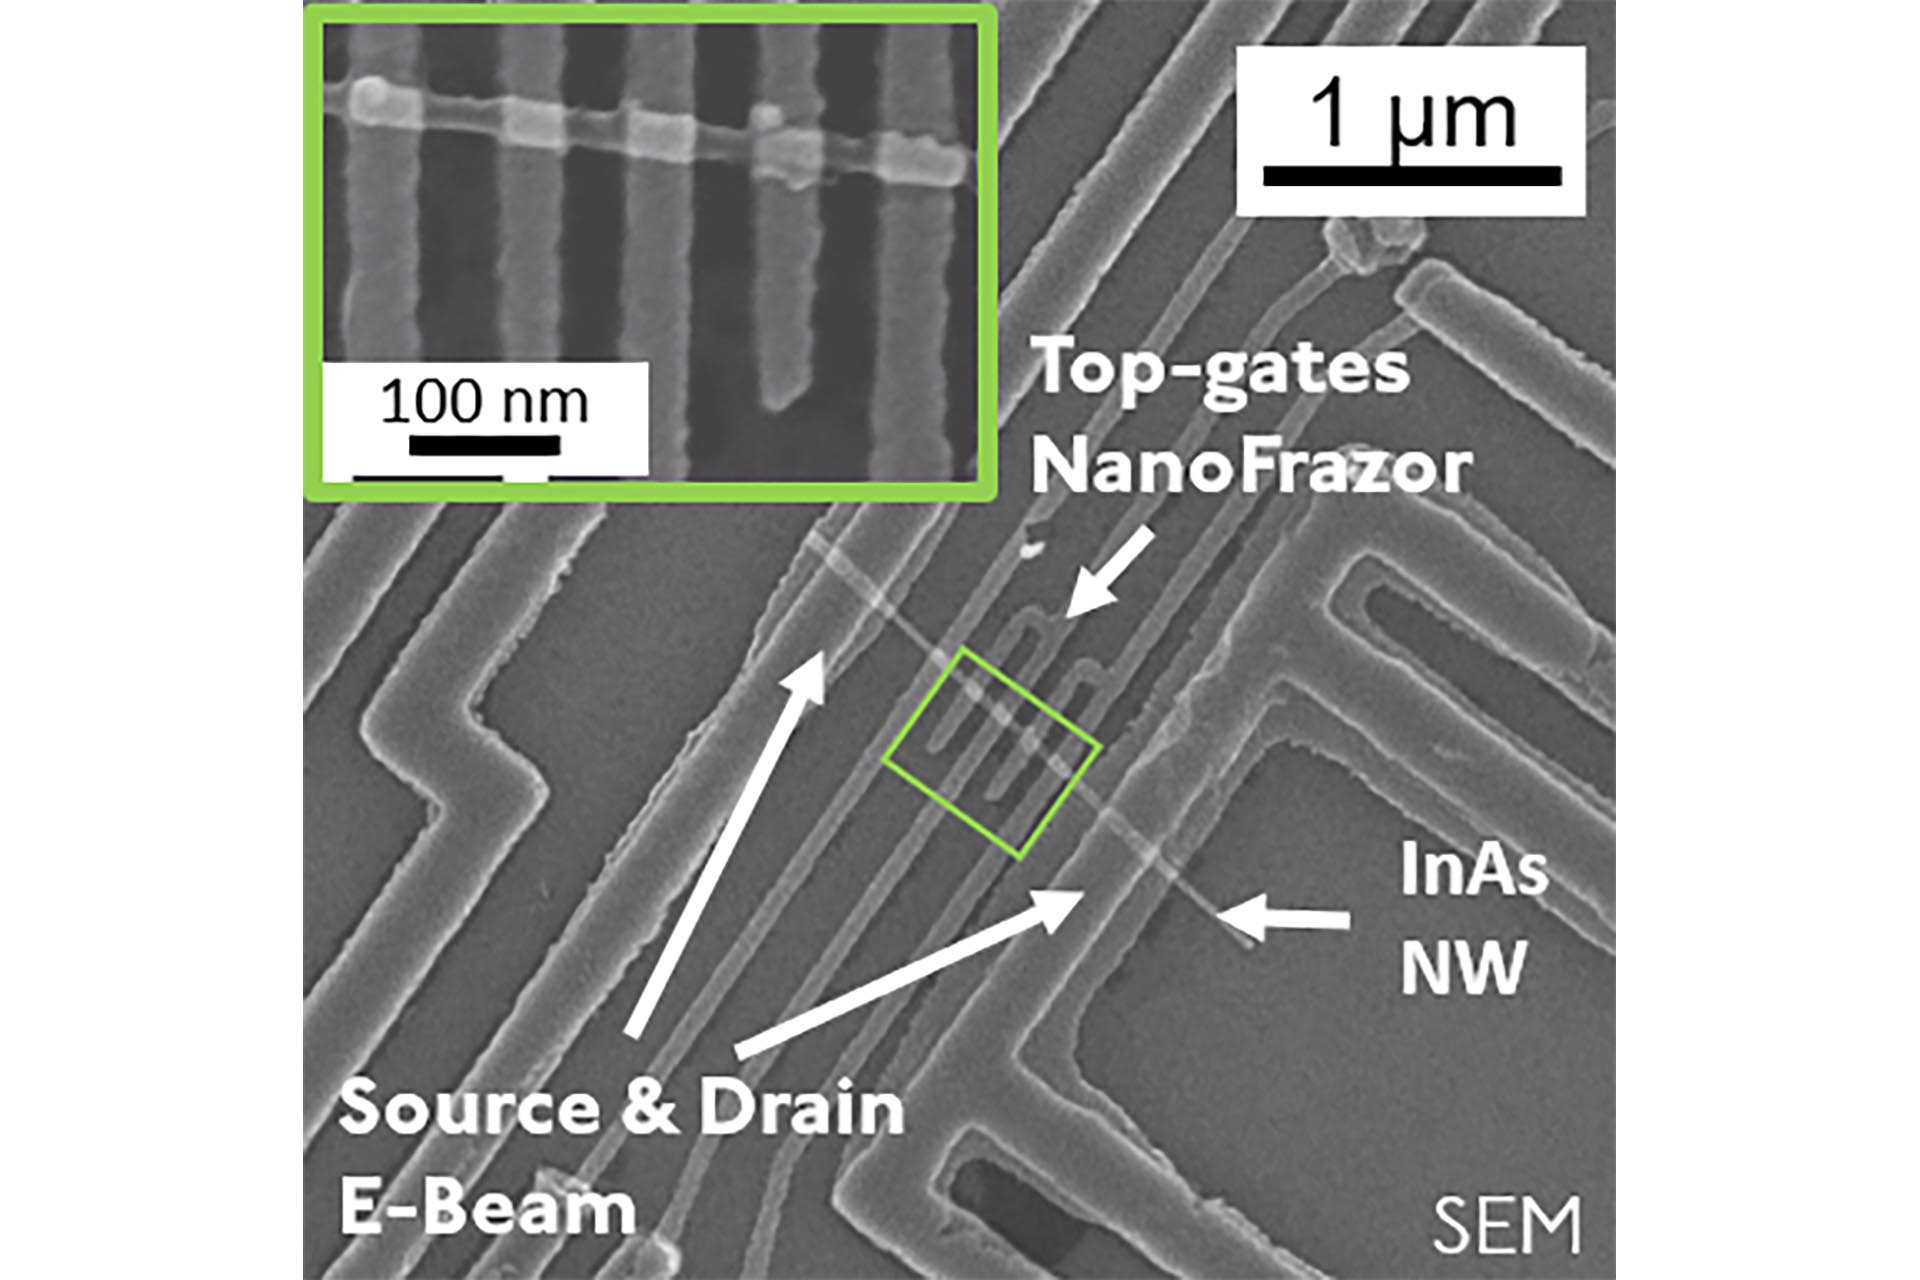 Indium arsenide (InAs) nanowire device with high resolution top gates fabricated by NanoFrazor lithography. (Courtesy of IBM Research Zurich, publication 2019)